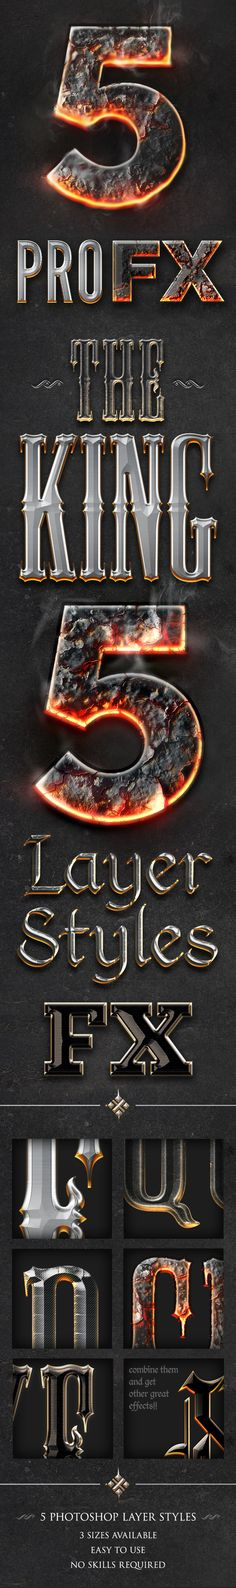 ◆ [Get Nulled]◸ Chrome & Fire - Gothic Medieval Layer Styles Fx Aggressive App Asl Burning Text Chrome Layer Styles Chromed 3d Photoshop, Photoshop Text Effects, Print Design, Web Design, Graphic Design, Layout Design, Smoke Design, Shops, Gothic